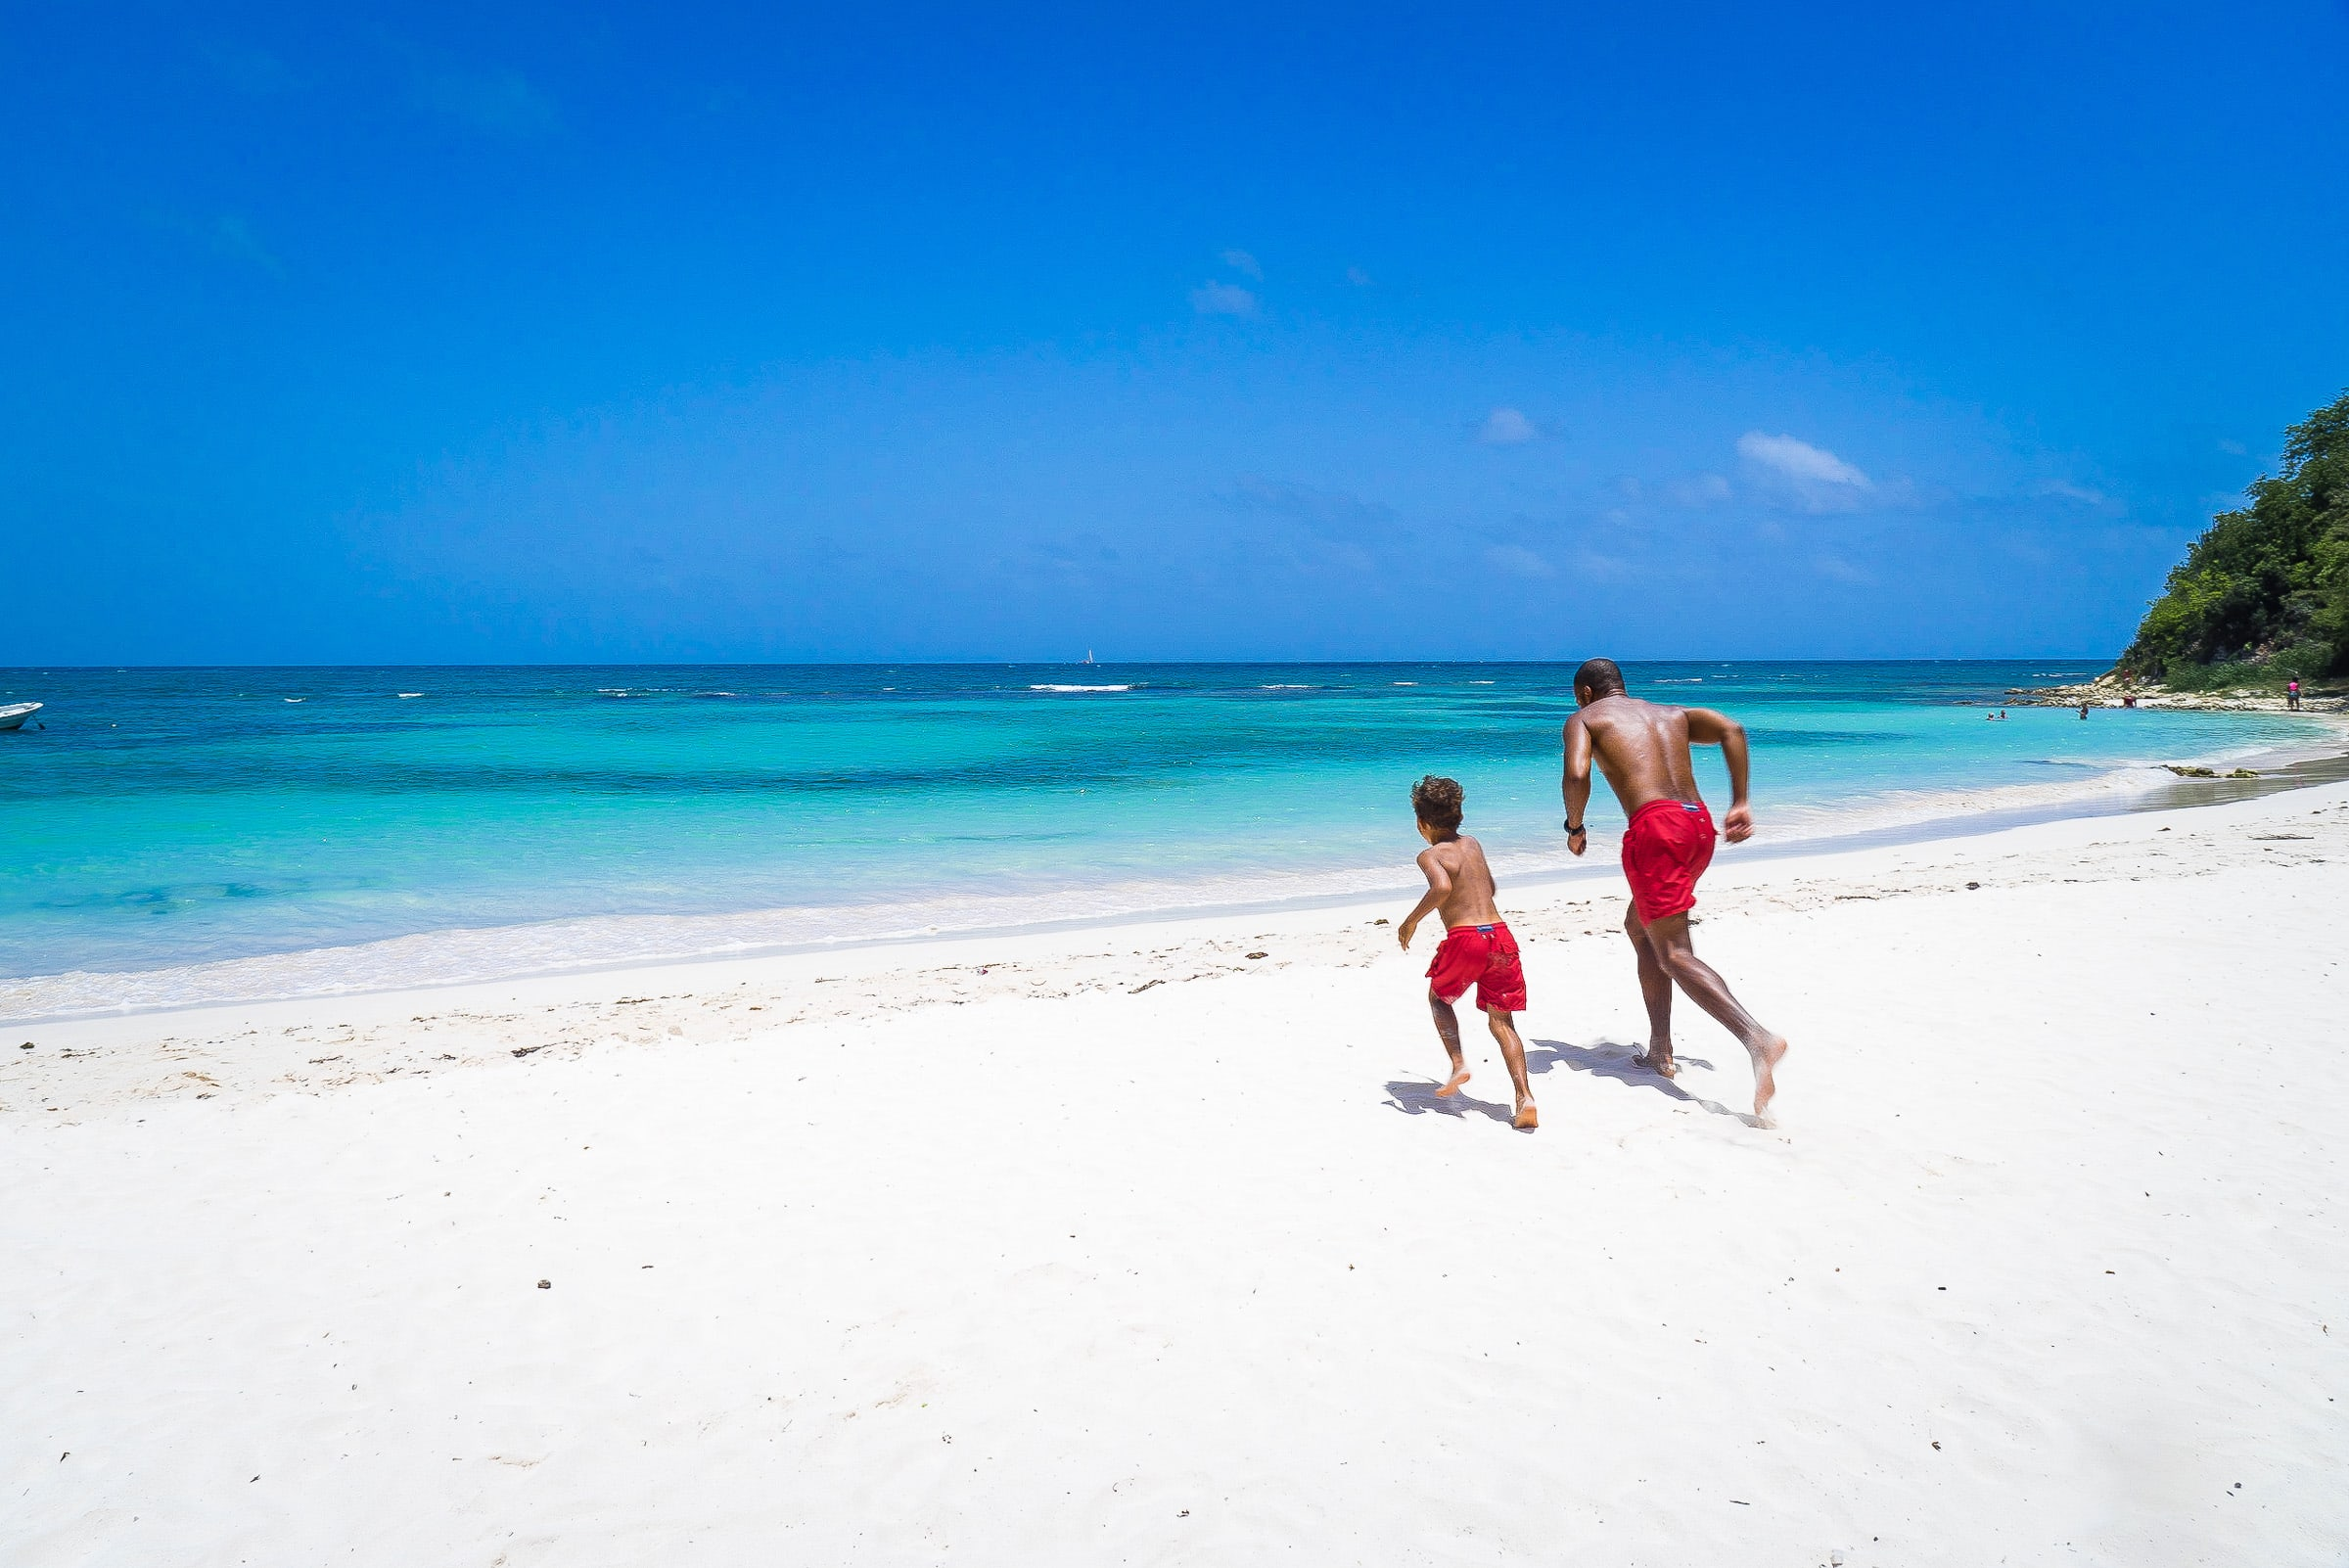 Dad S Guide To Short Races On Long Bay Beach Antigua